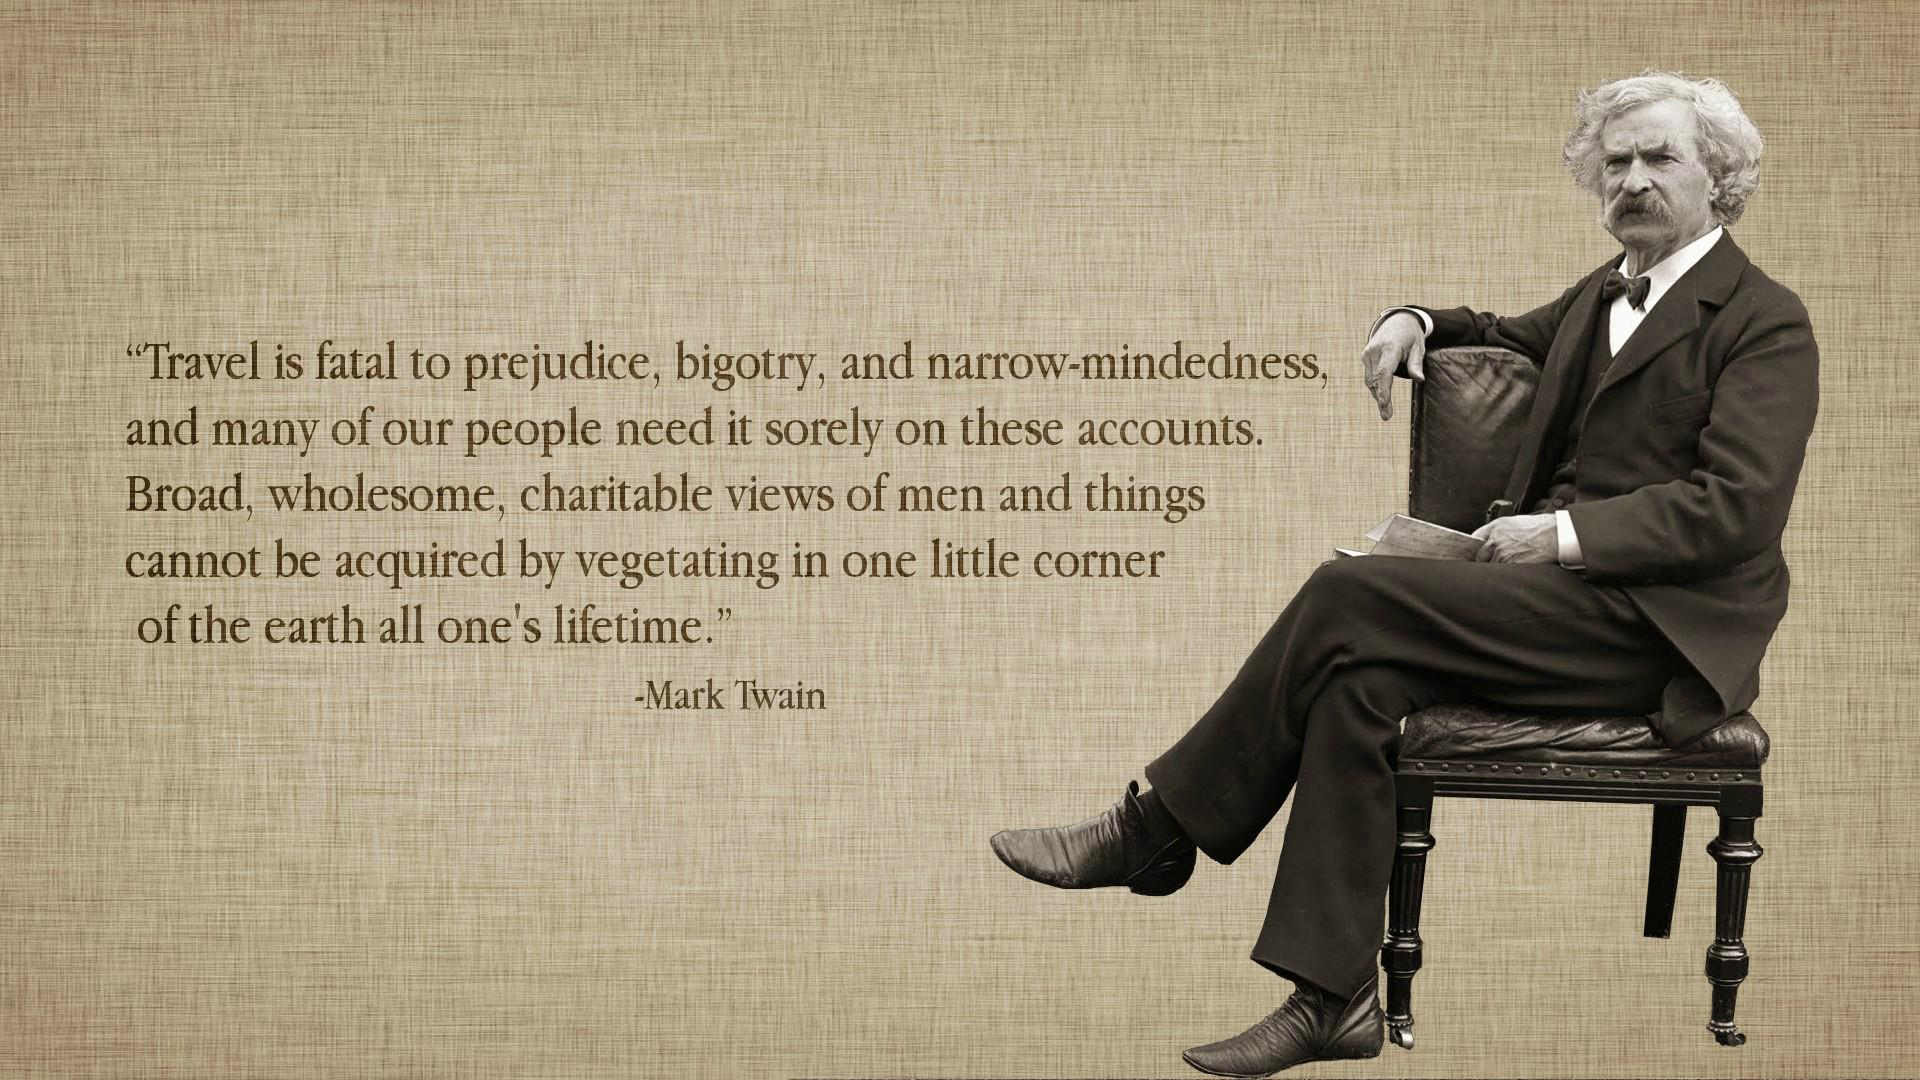 Mark Twain Quotes: The #1 Strategy For Overcoming Cultural Differences